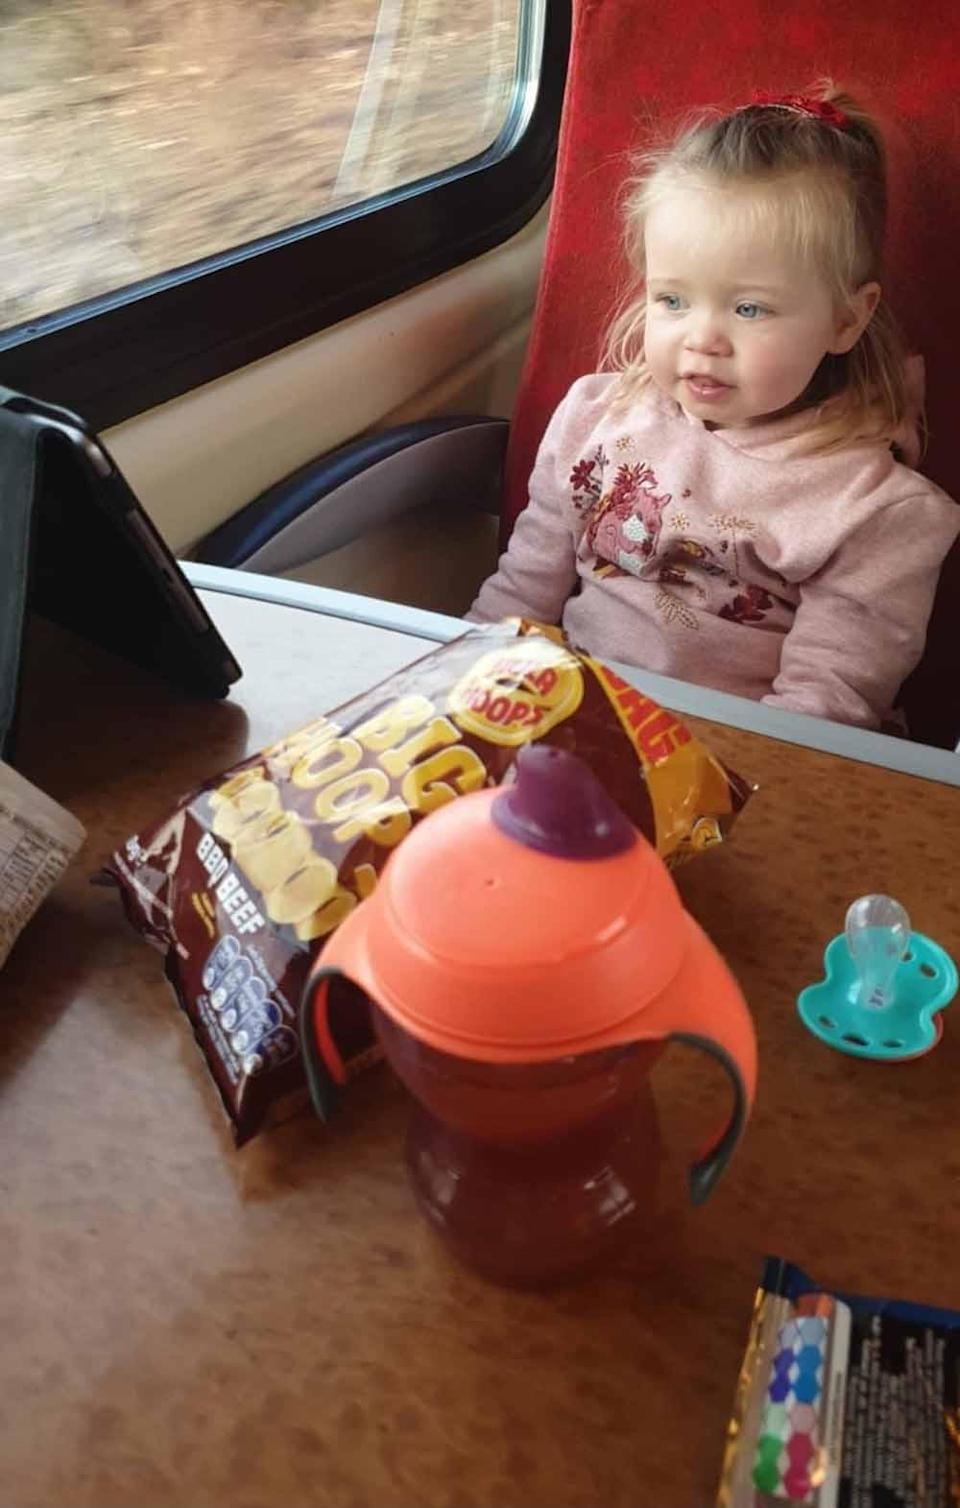 Evie on the train to her first treatment in Birmingham. PA REAL LIFE COLLECT